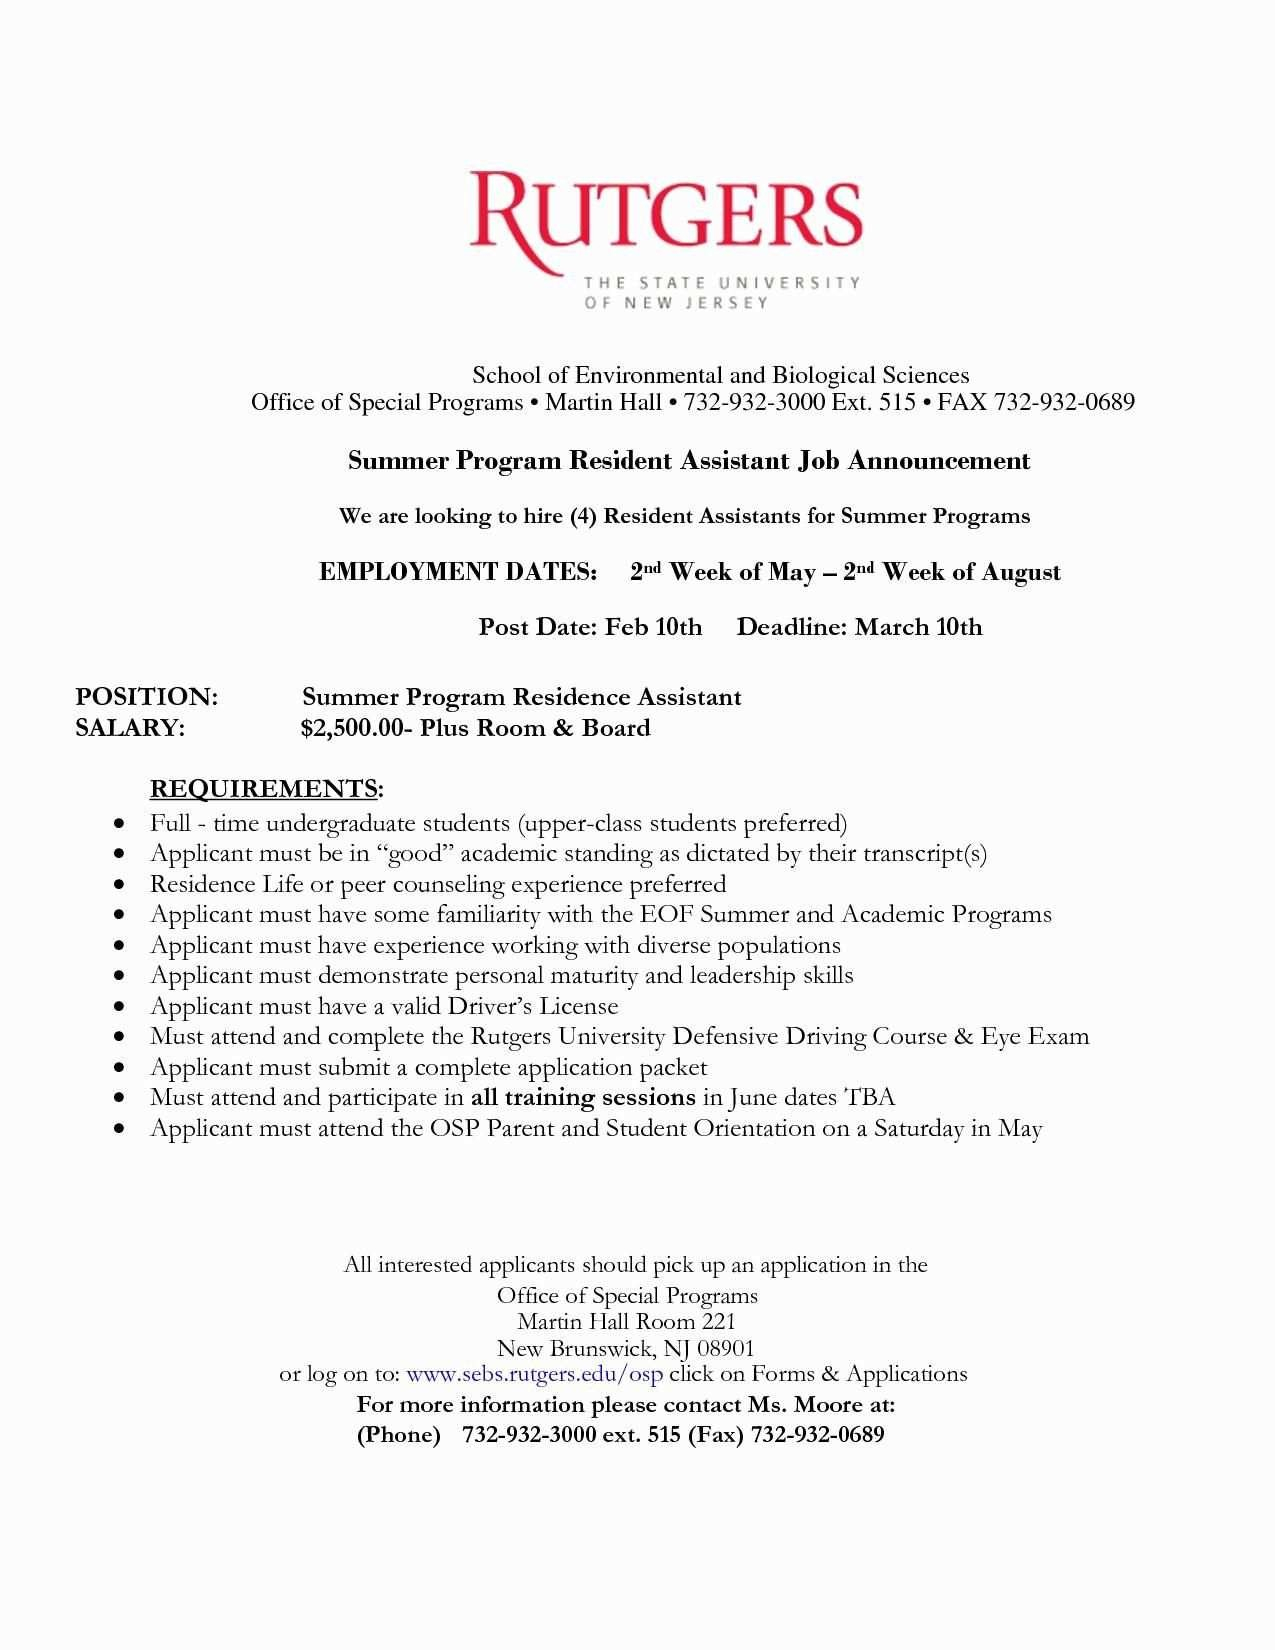 rutgers resume template example-Pages Resume Template New ¢Ë†Å¡ 2 Page Resume Examples Lovely Sample Profile For Resume Resume 3-t